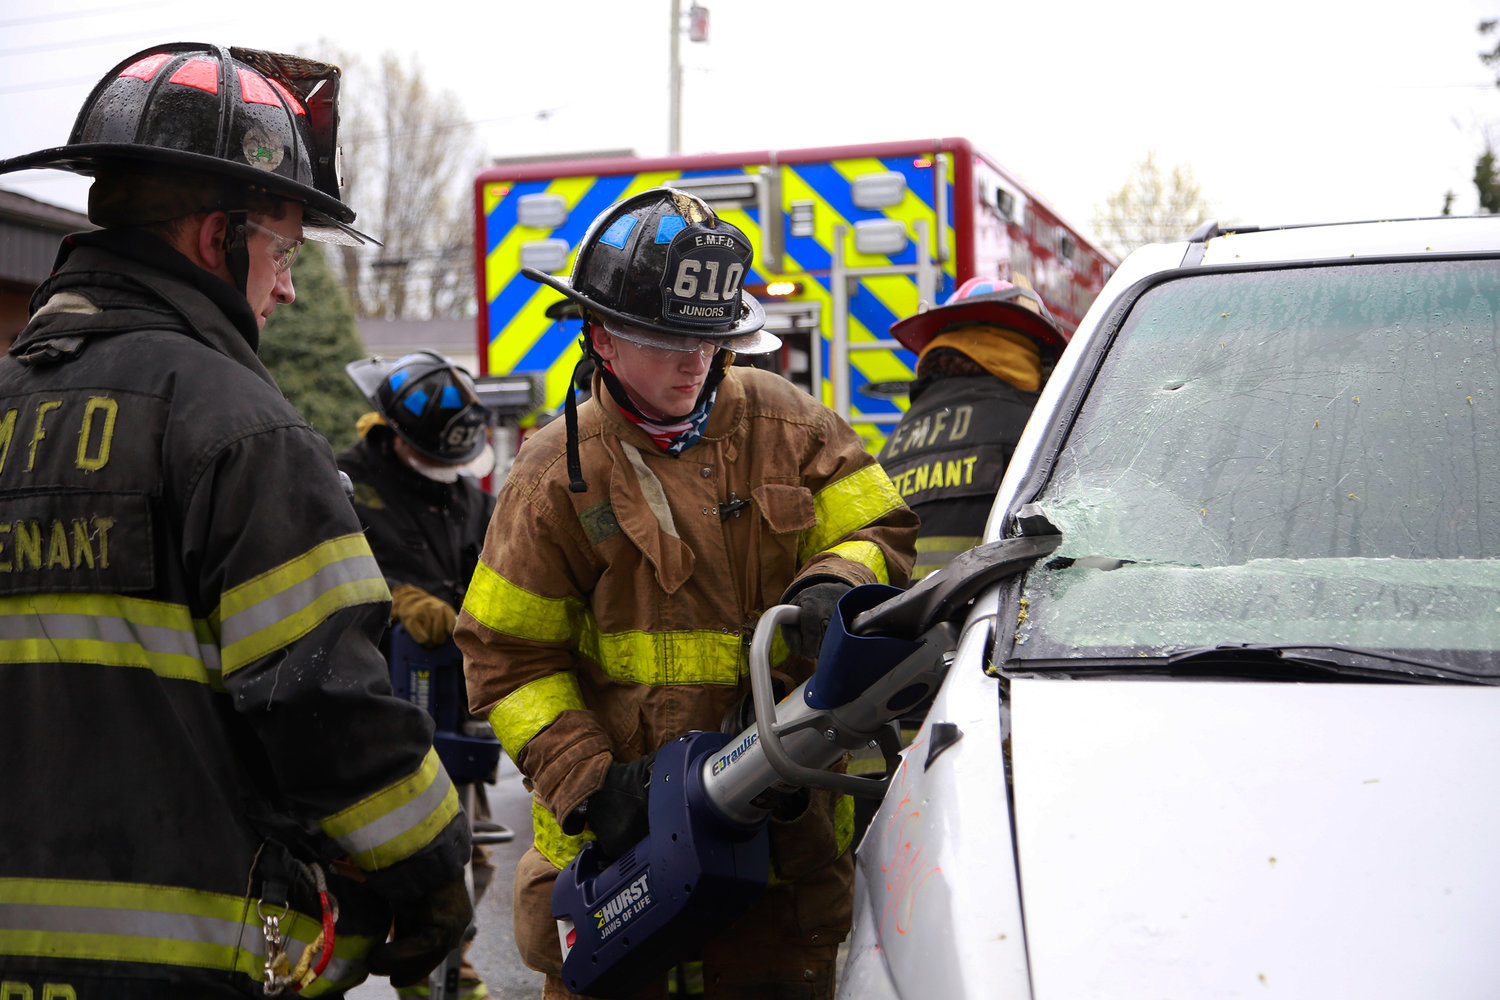 Danny Corr, a lieutenant at Ladder 1, left, supervised junior firefighter Aidan Finneran, 16, when he used the Jaws of Life on a vehicle during one of the demonstrations.